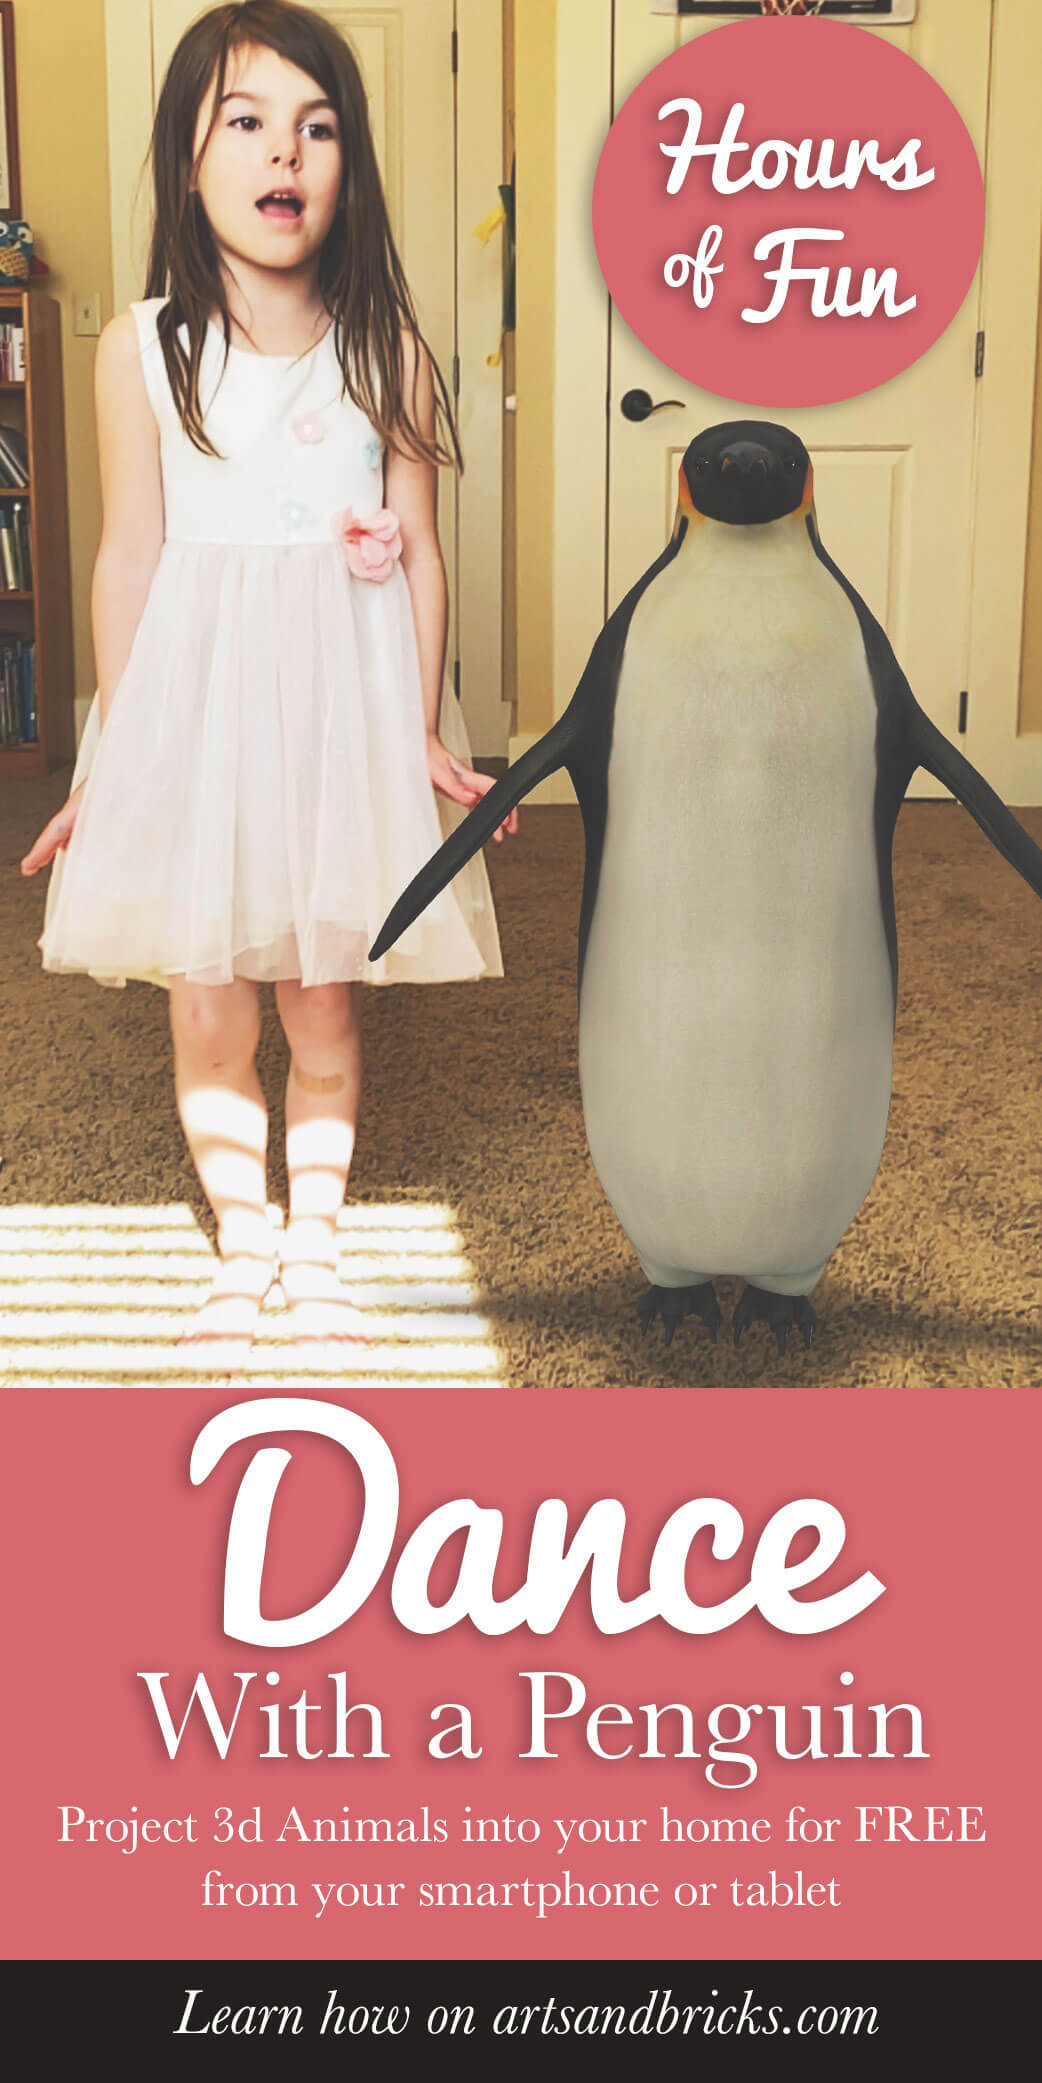 Dance with a Penguin. Learn how to project 3D animals into your home for free from your smartphone or table. Hours of fun! Great activity for a unit about penguins in school, too.